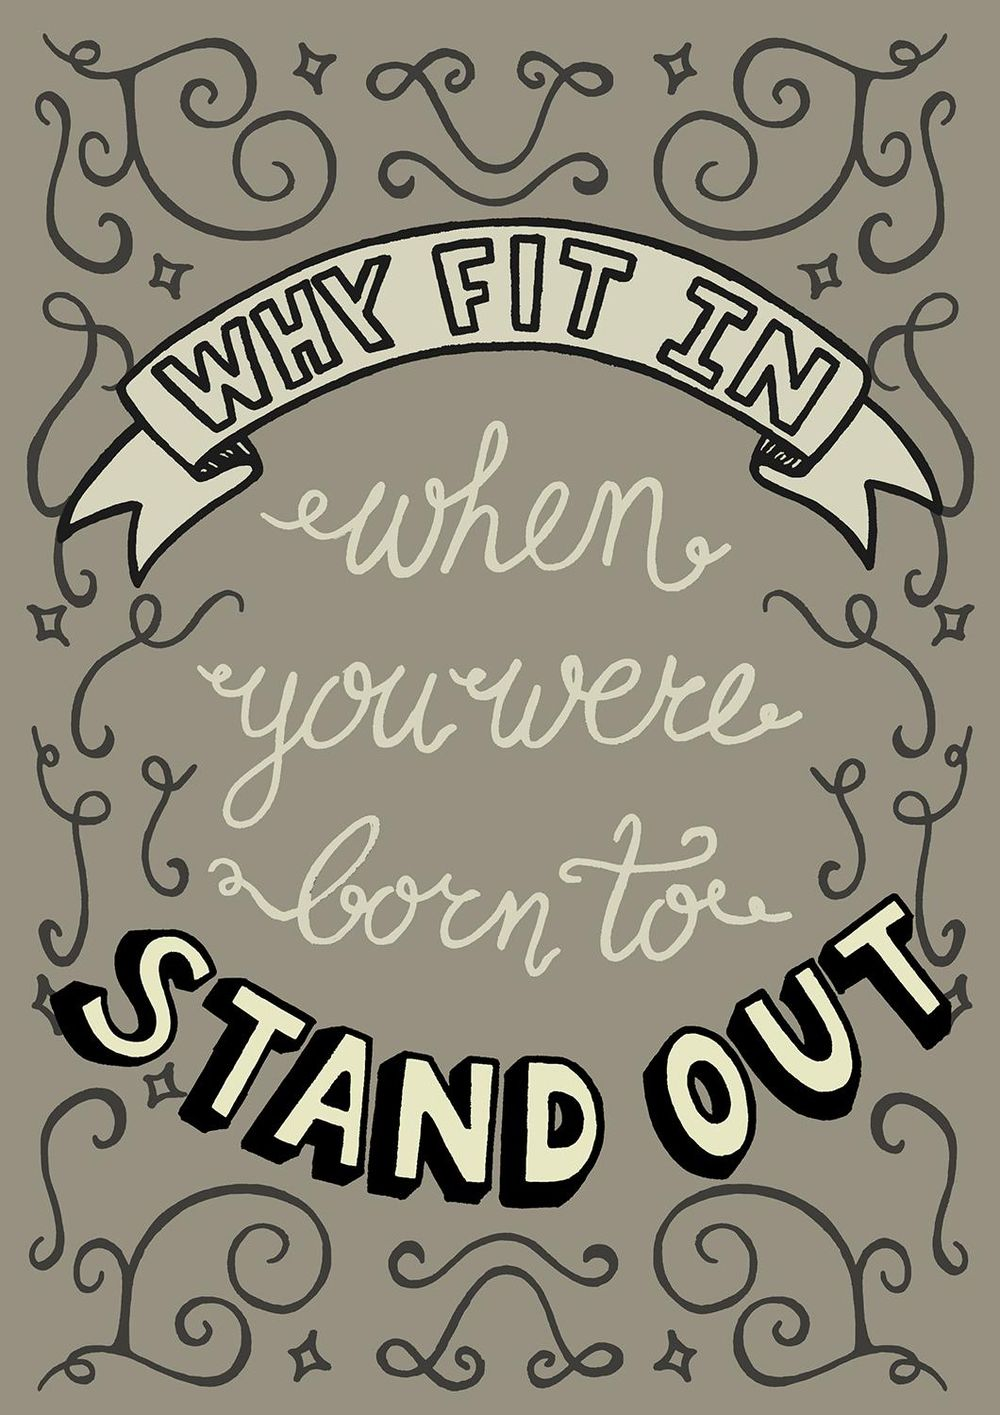 Why fit in when you were born to stand out - image 7 - student project